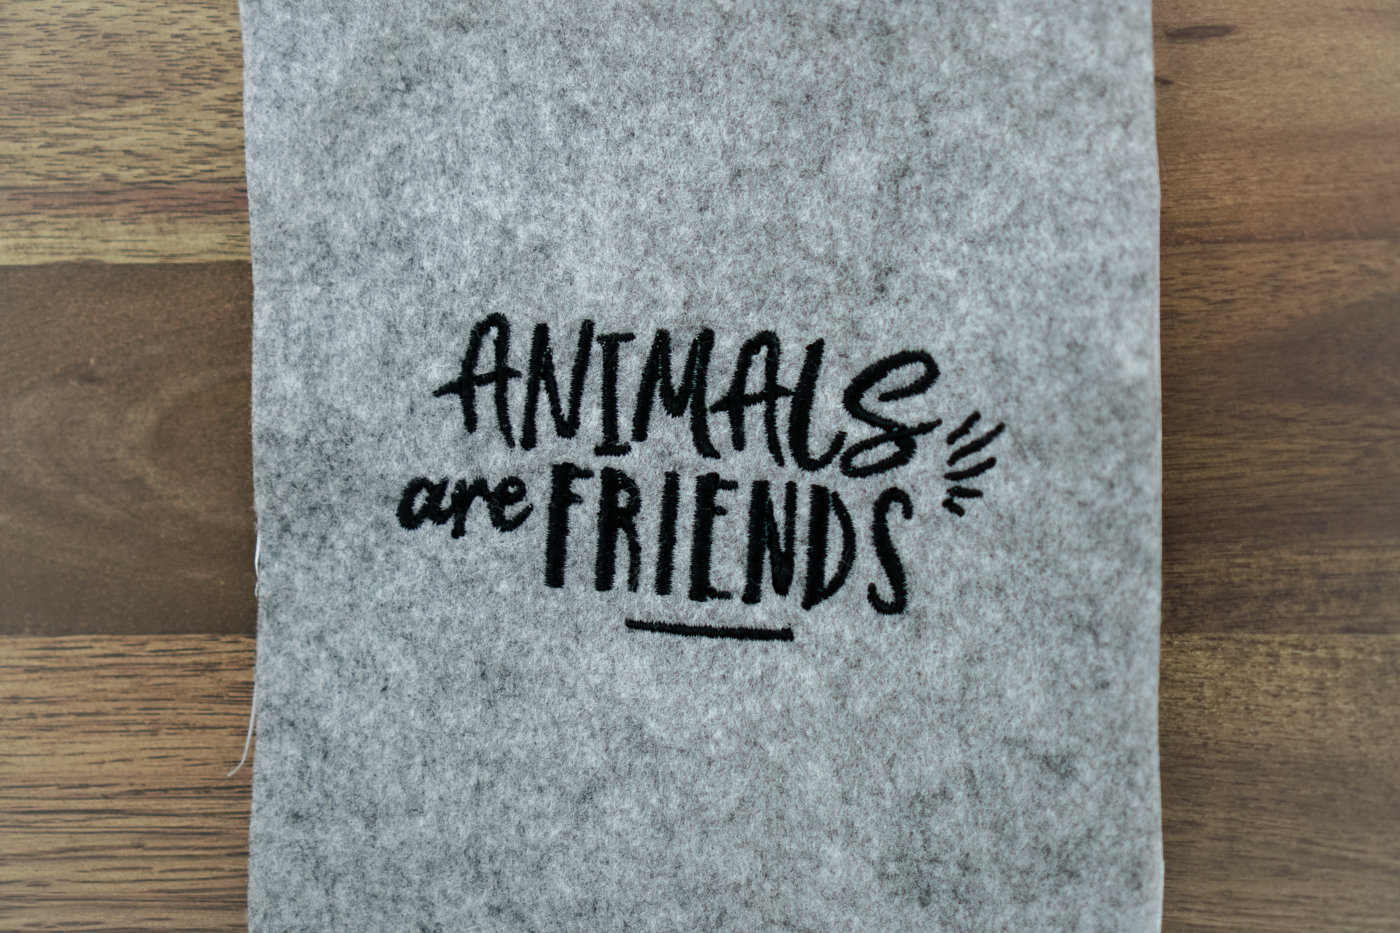 Stickdatei kostenlos stickdateien tiere 🐽 17x Stickdateien Tiere + BONUS Stickdatei GRATIS 🌟 stickdatei animals are friends 1400x933